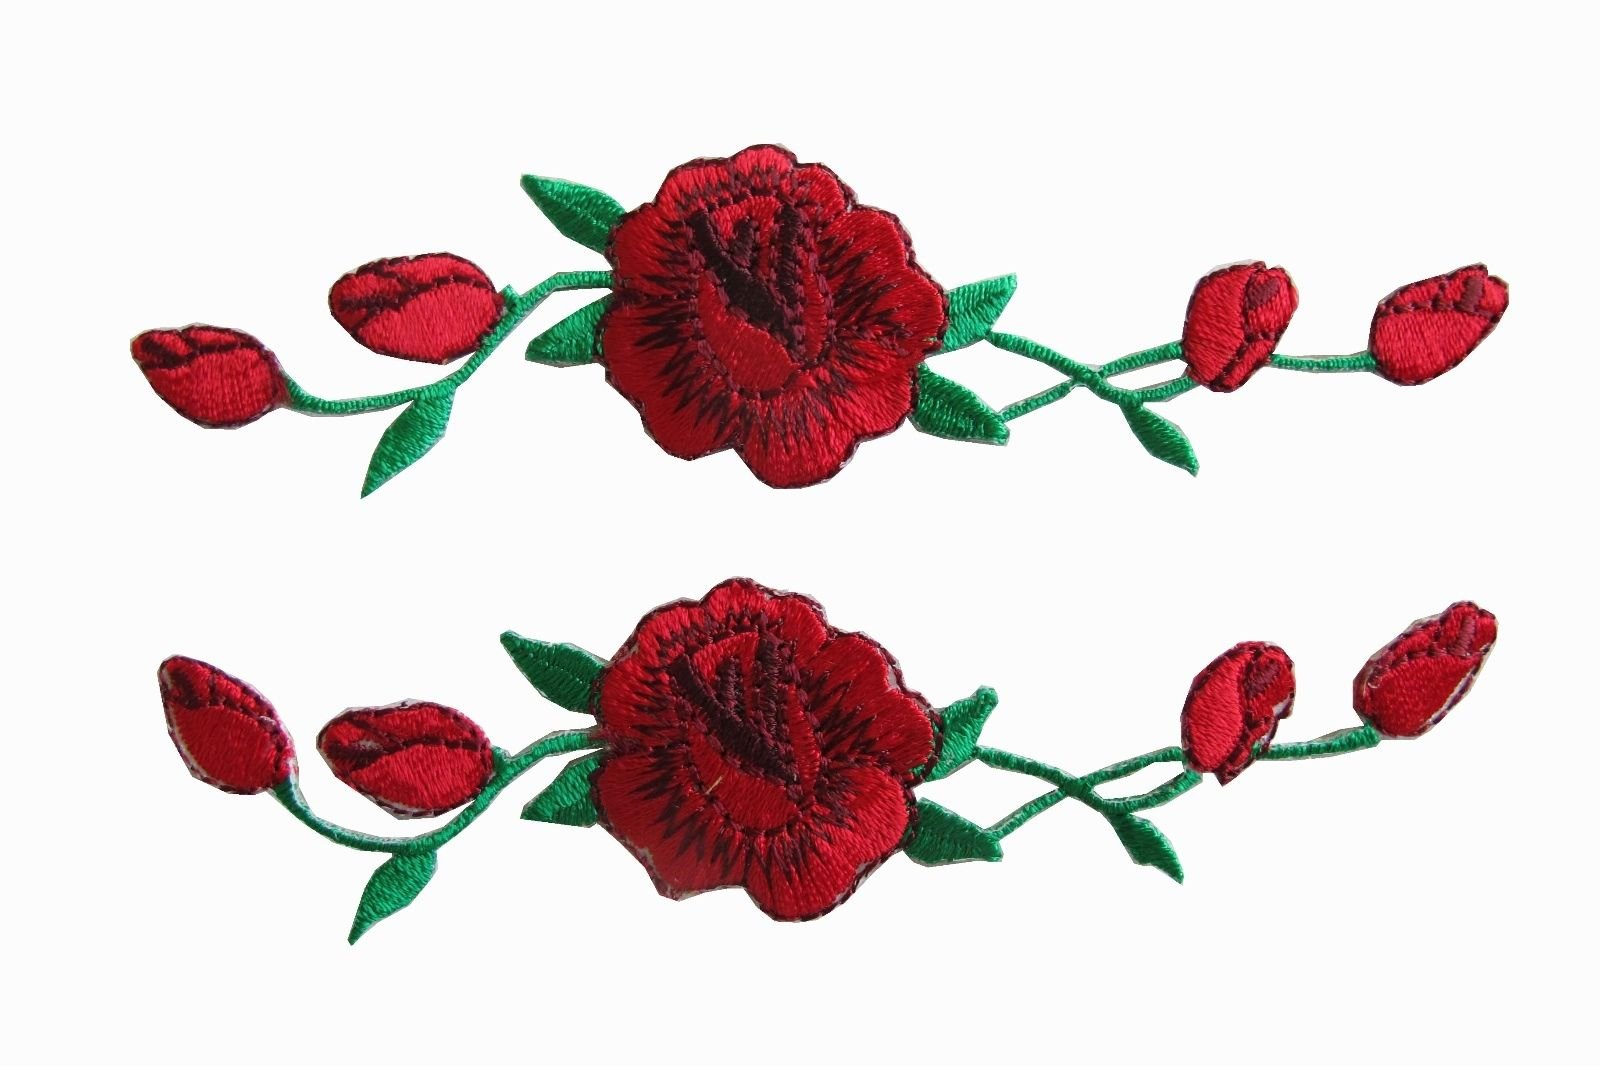 """Yonisun 2 Pcs Applique Patch Rose Flower Embroidery Iron On Flower Appliques for Craft, Sewing, Clothing, Scrapbooking Decorative 1 1/8"""" x4 3/4"""" inch (Red)"""